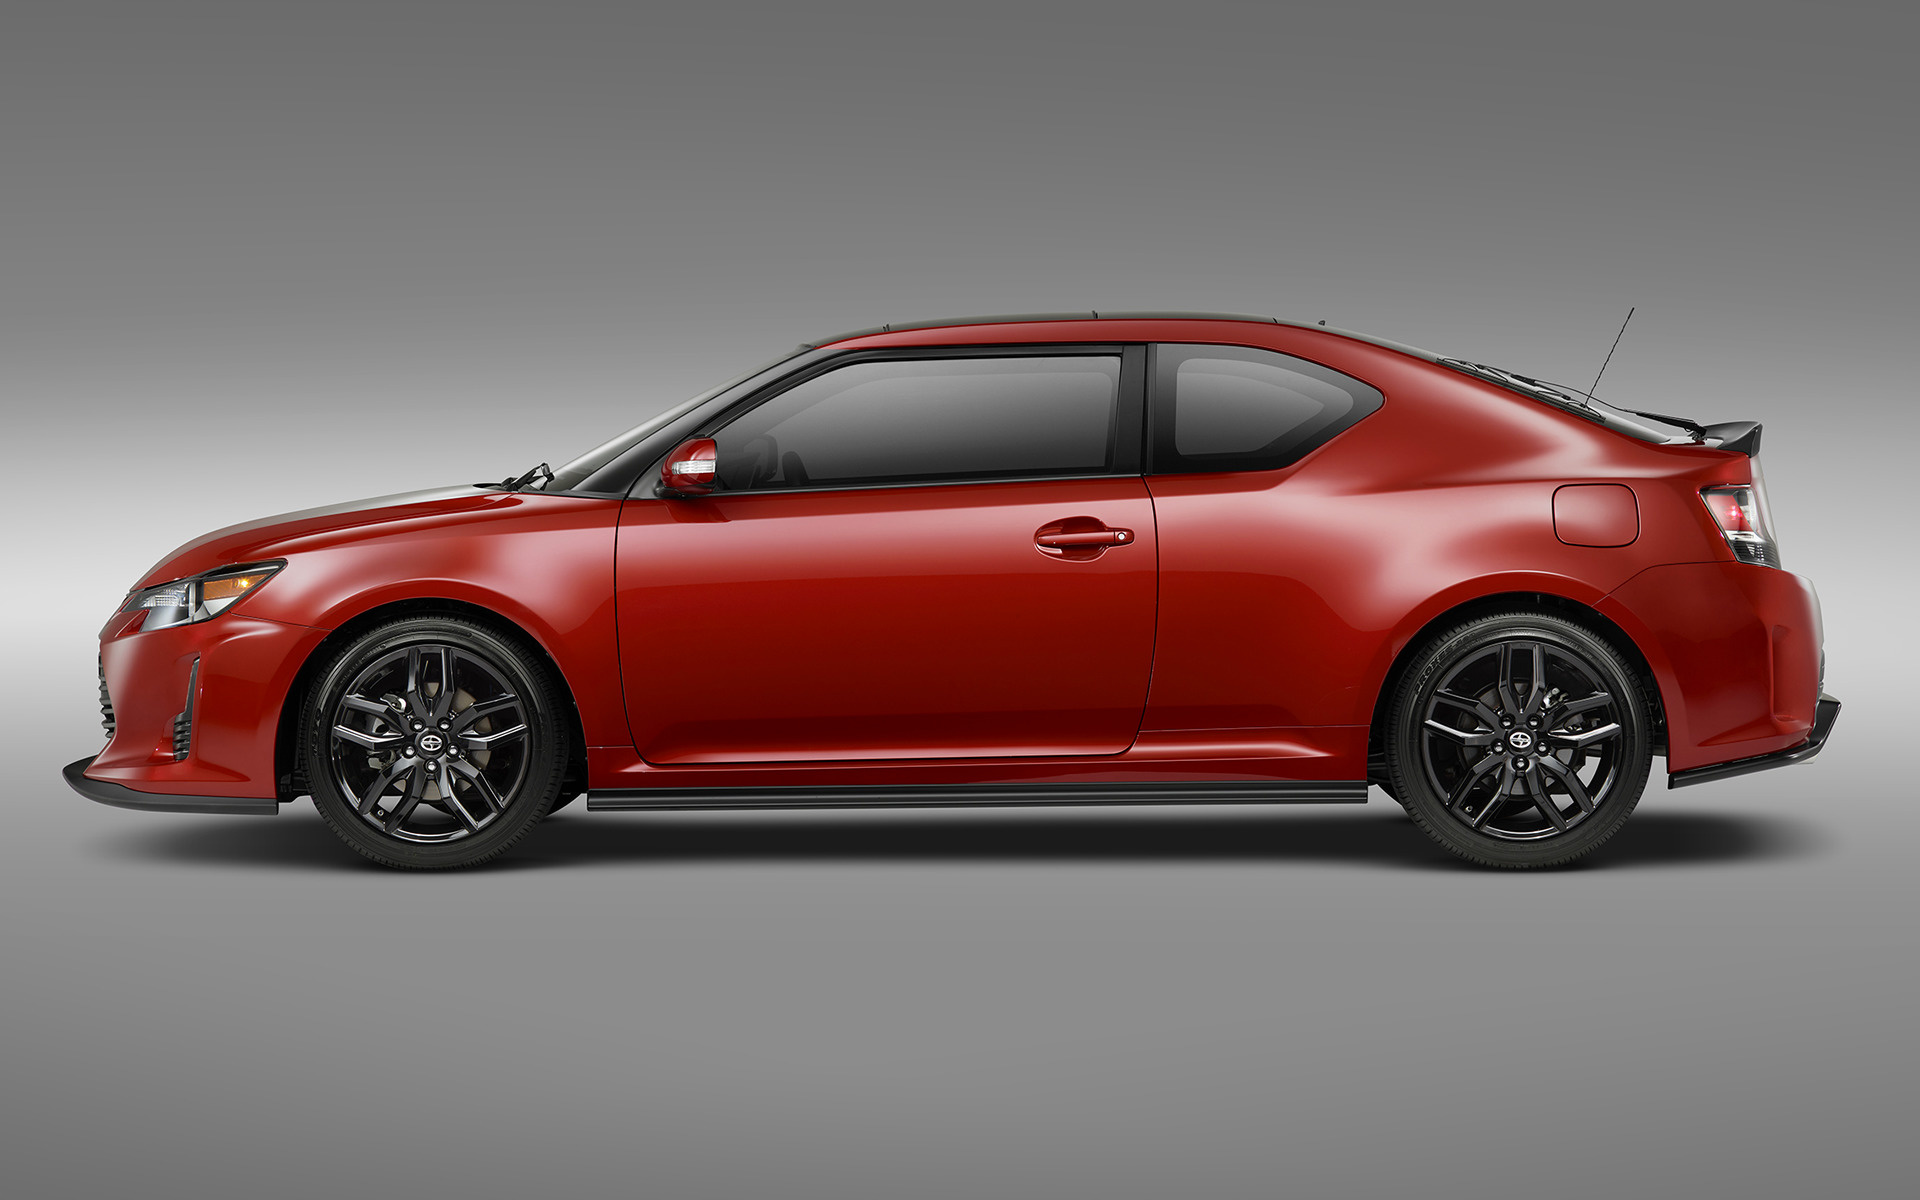 Red Scion Tc Desktop Wallpaper 64805 1920x1200px